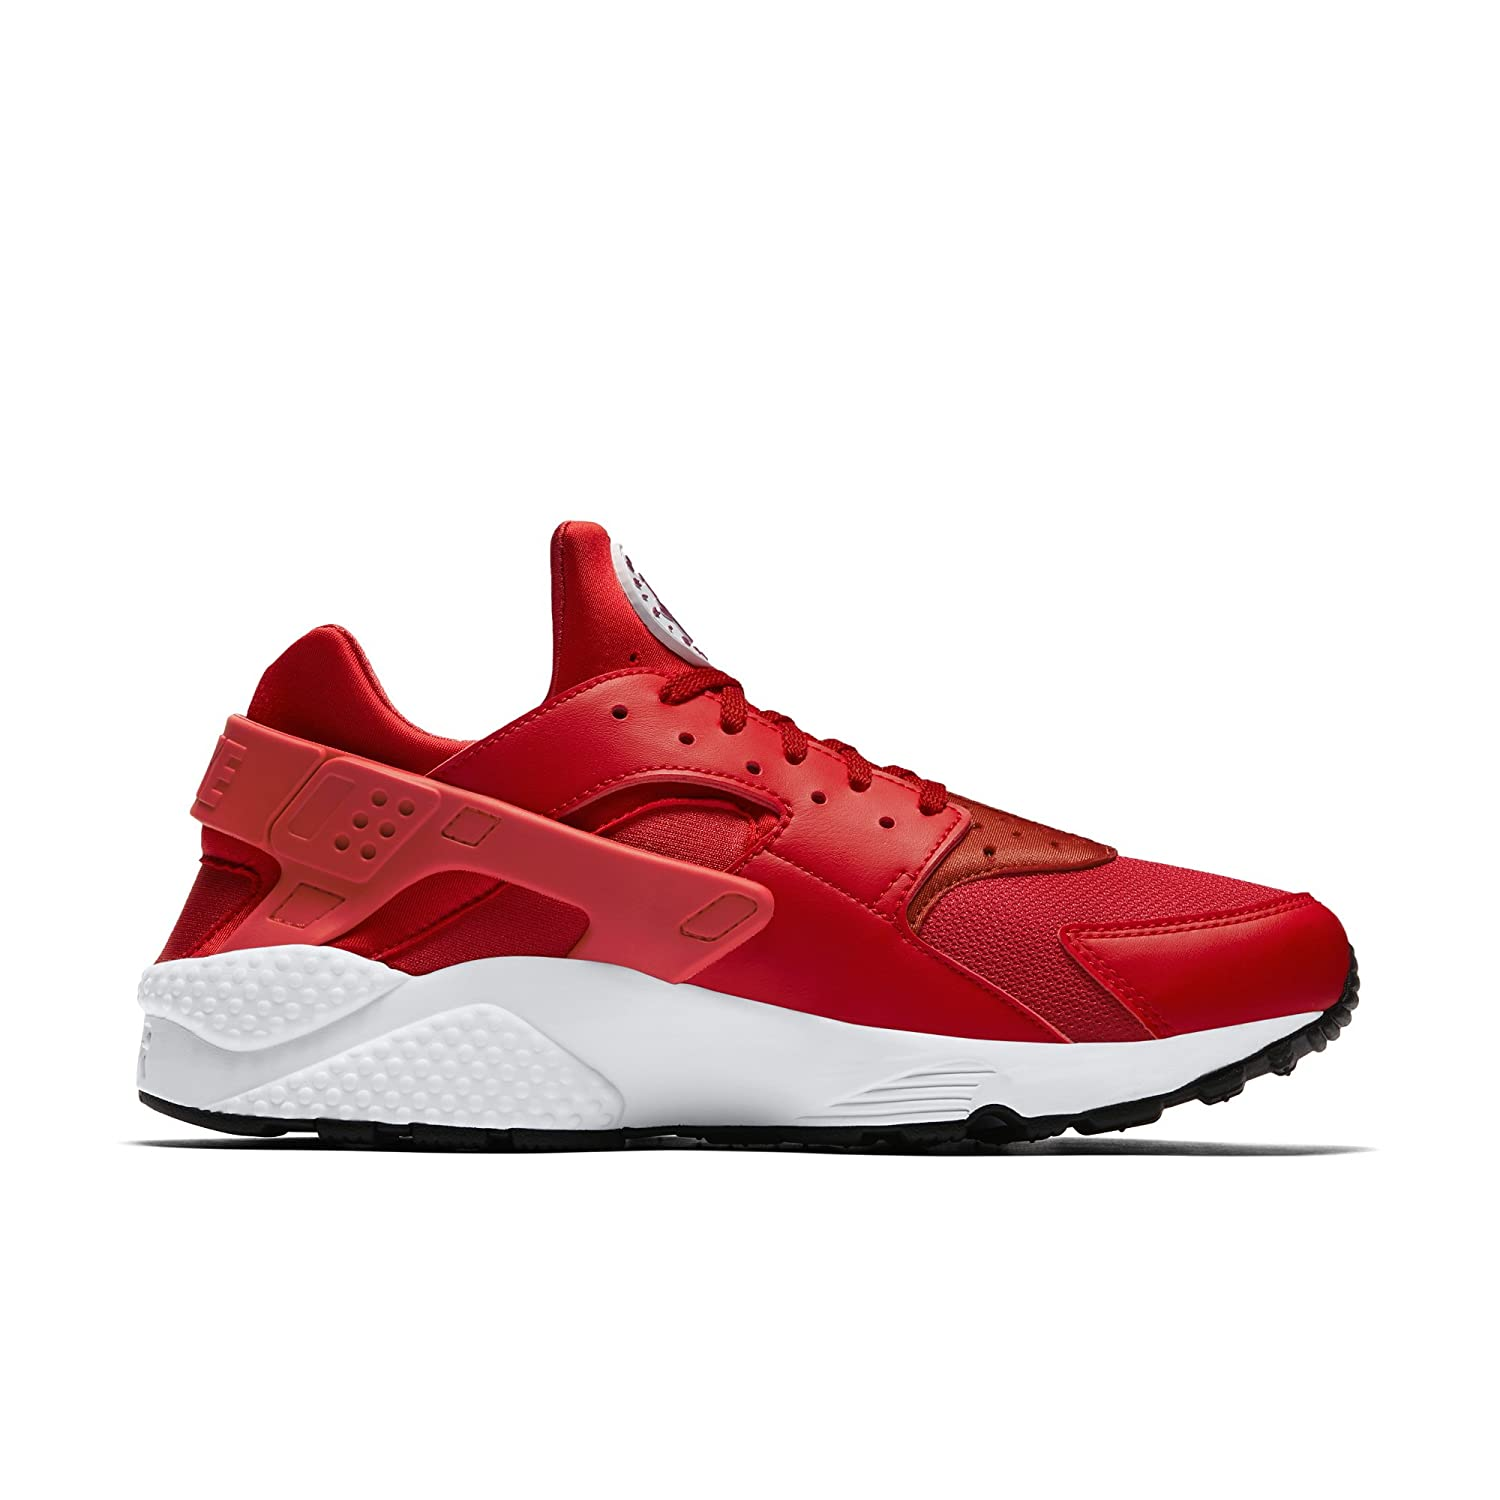 Nike Nike Homme Air Basses Nike HuaracheBaskets HuaracheBaskets Air Basses Air Homme PZXOiTku